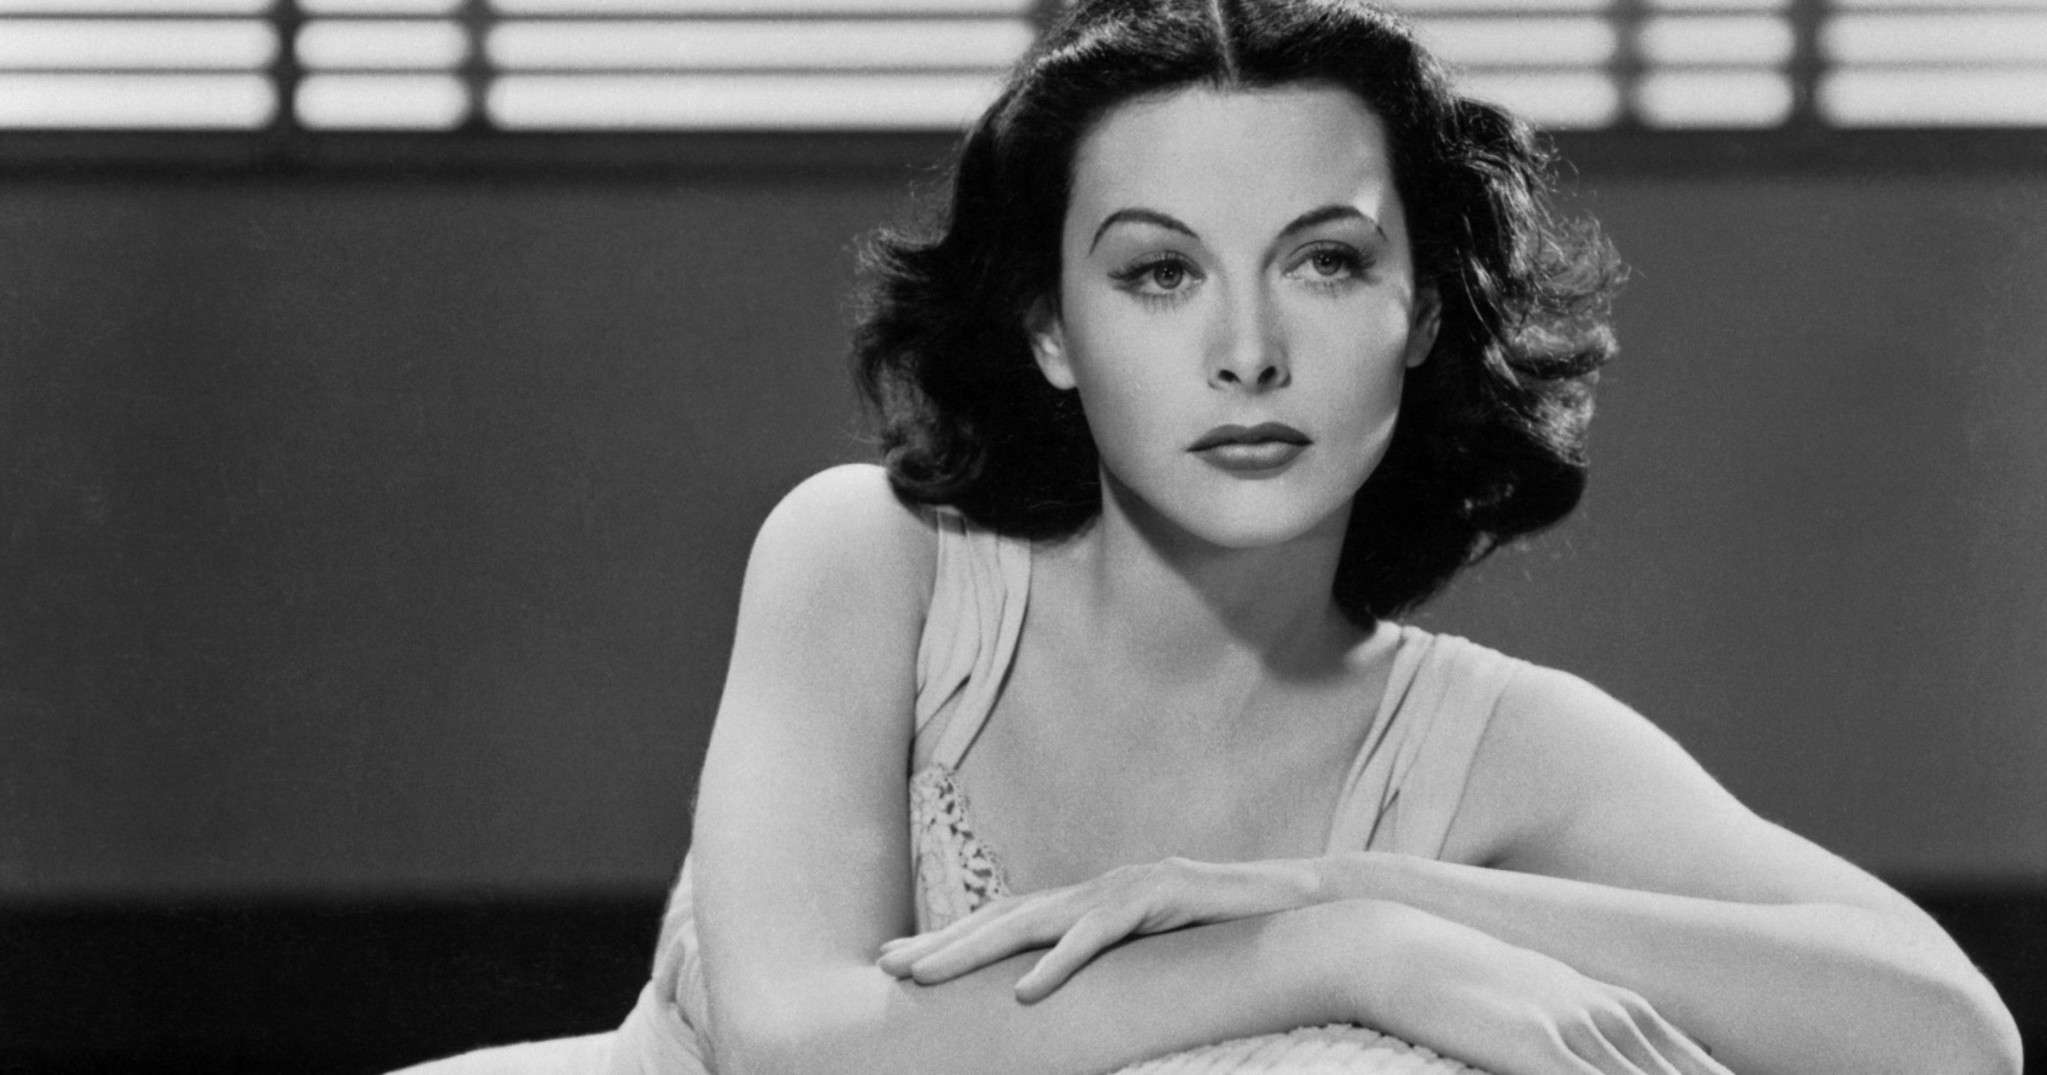 Black and white photo of Hedy Lamarr.